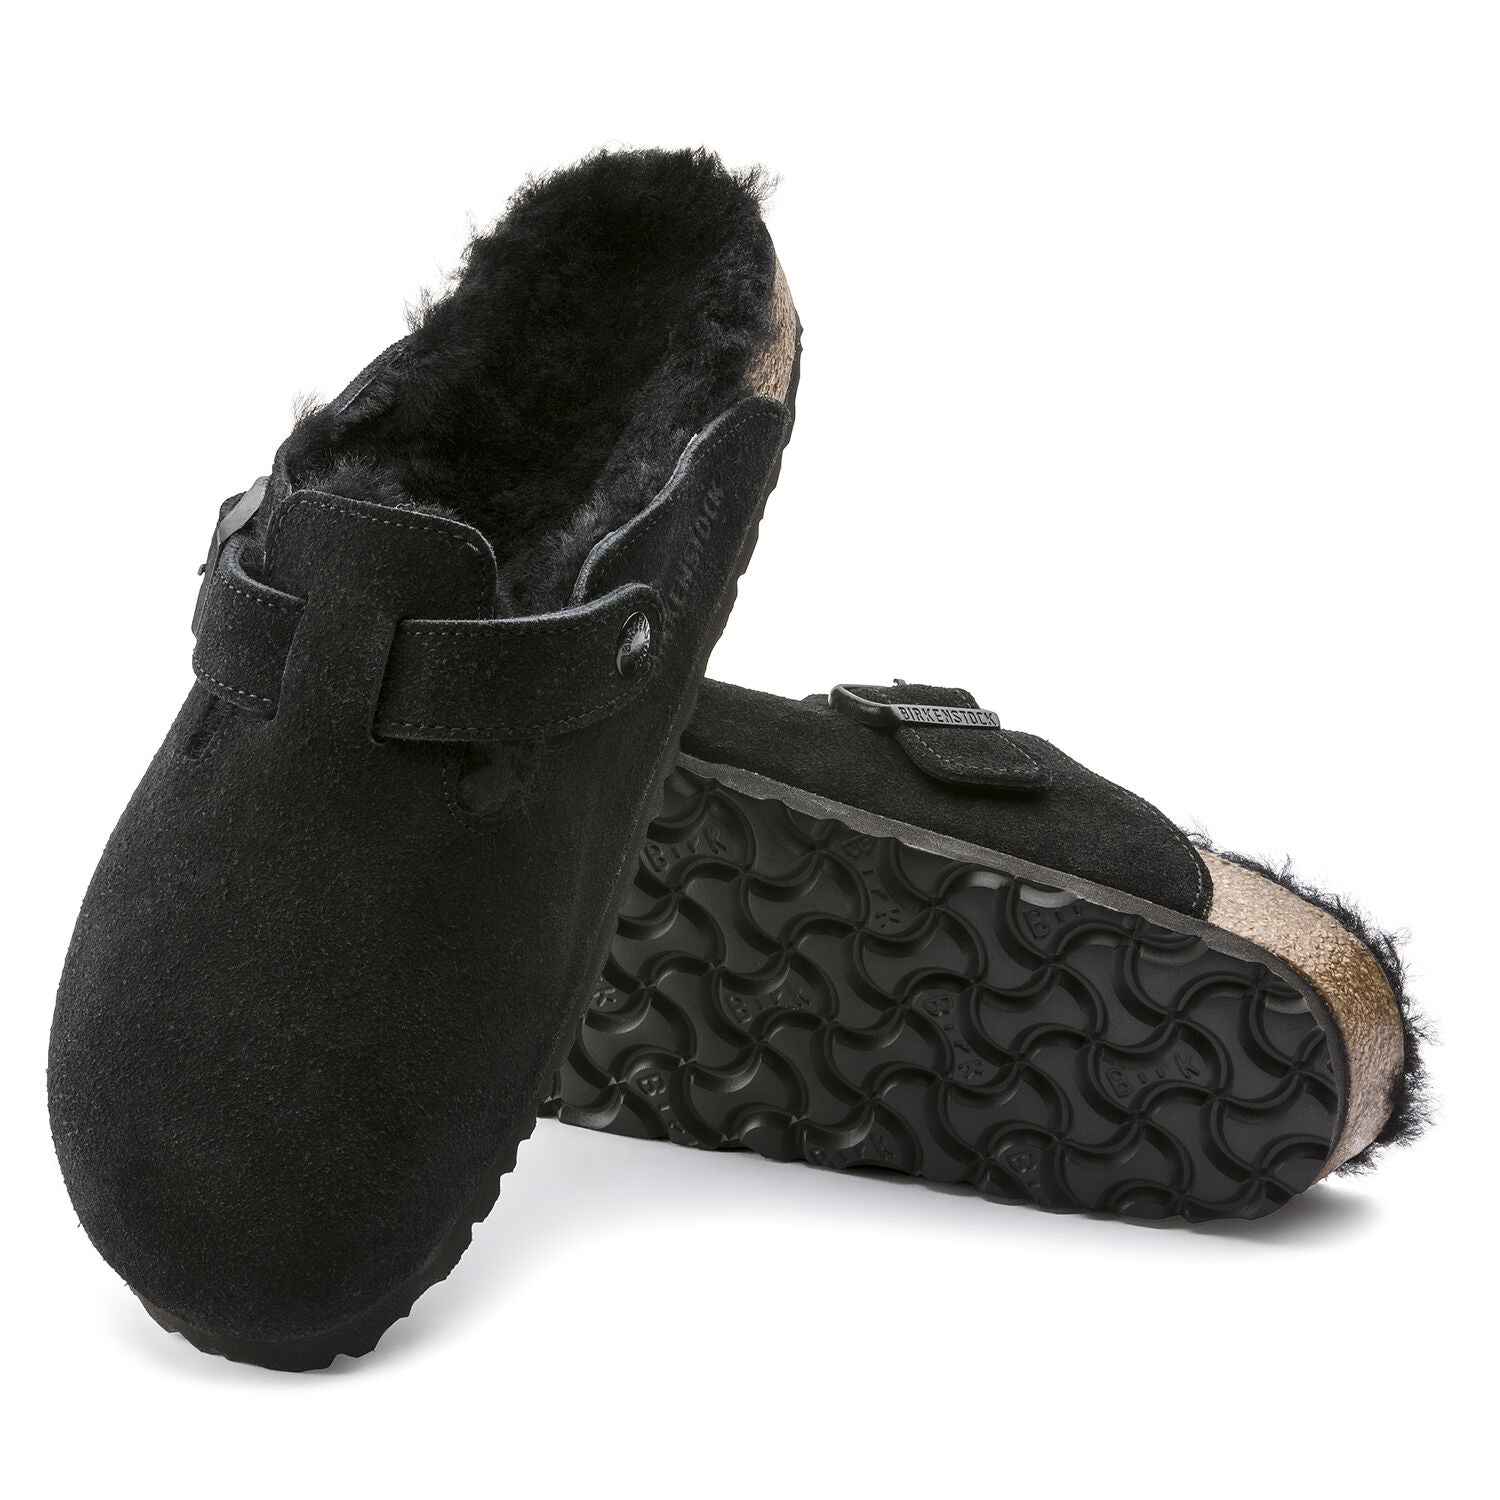 Boston Black sheepskin